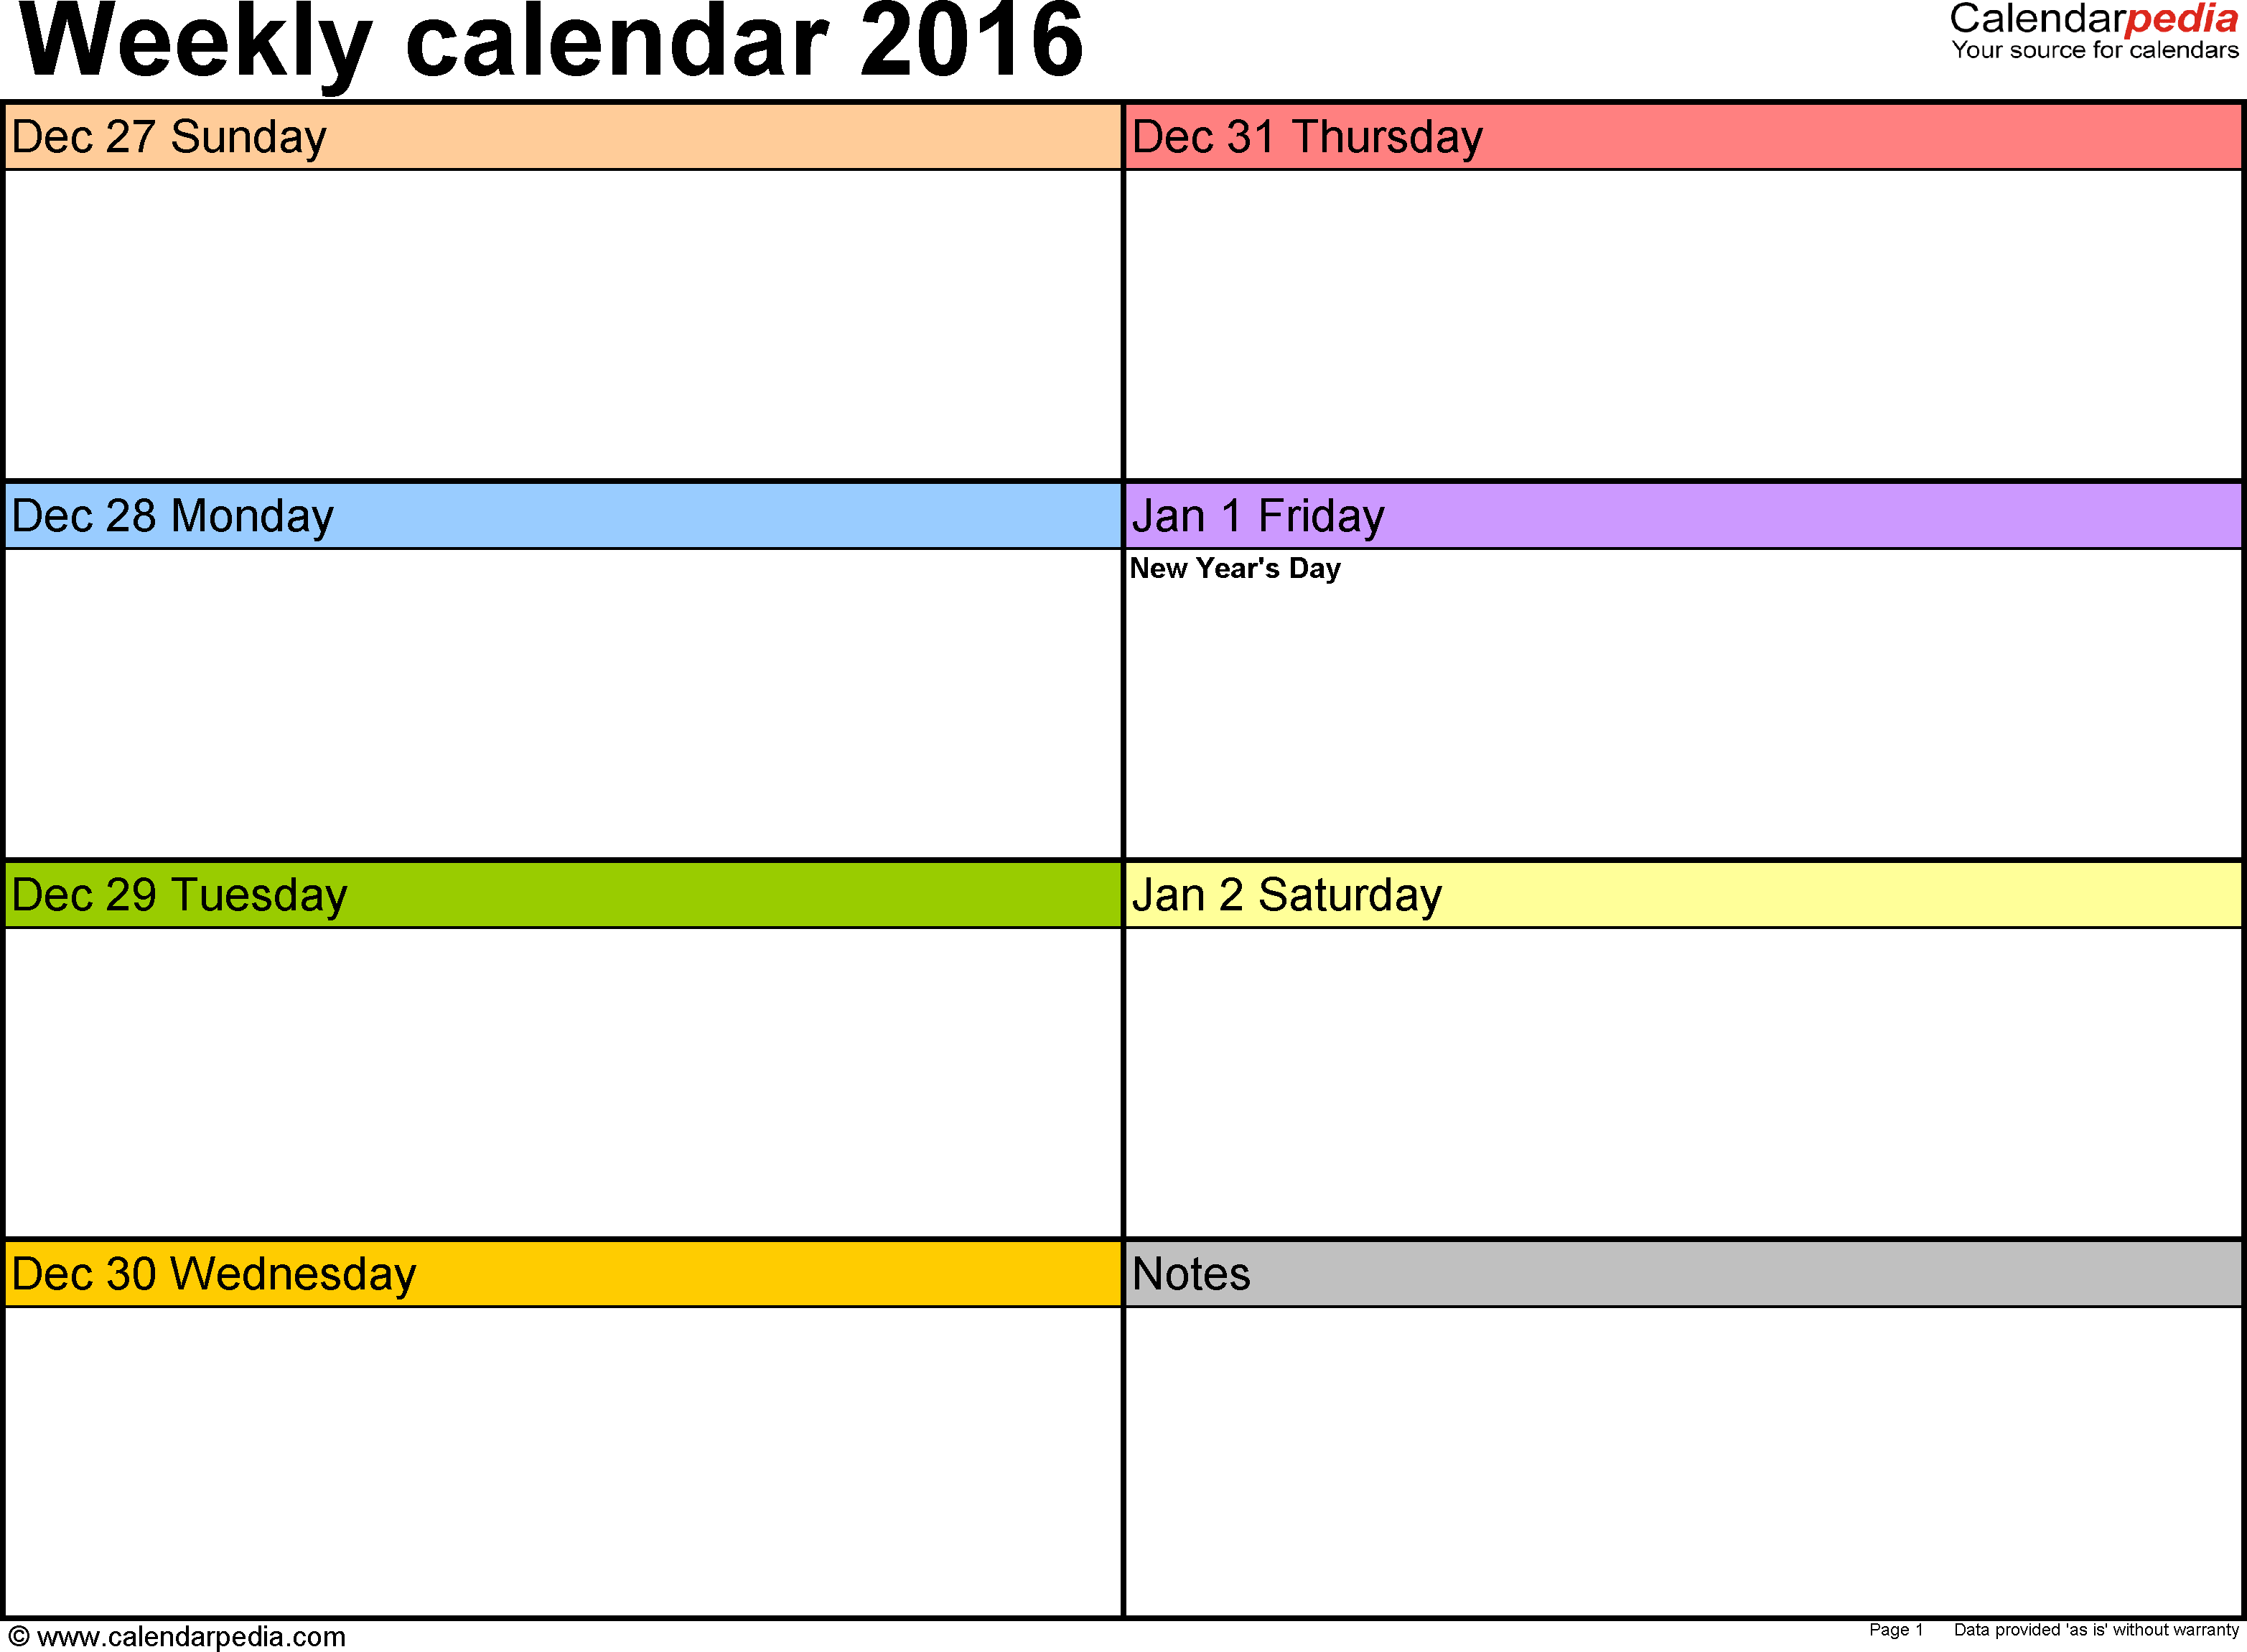 Weekly Calendars For Word